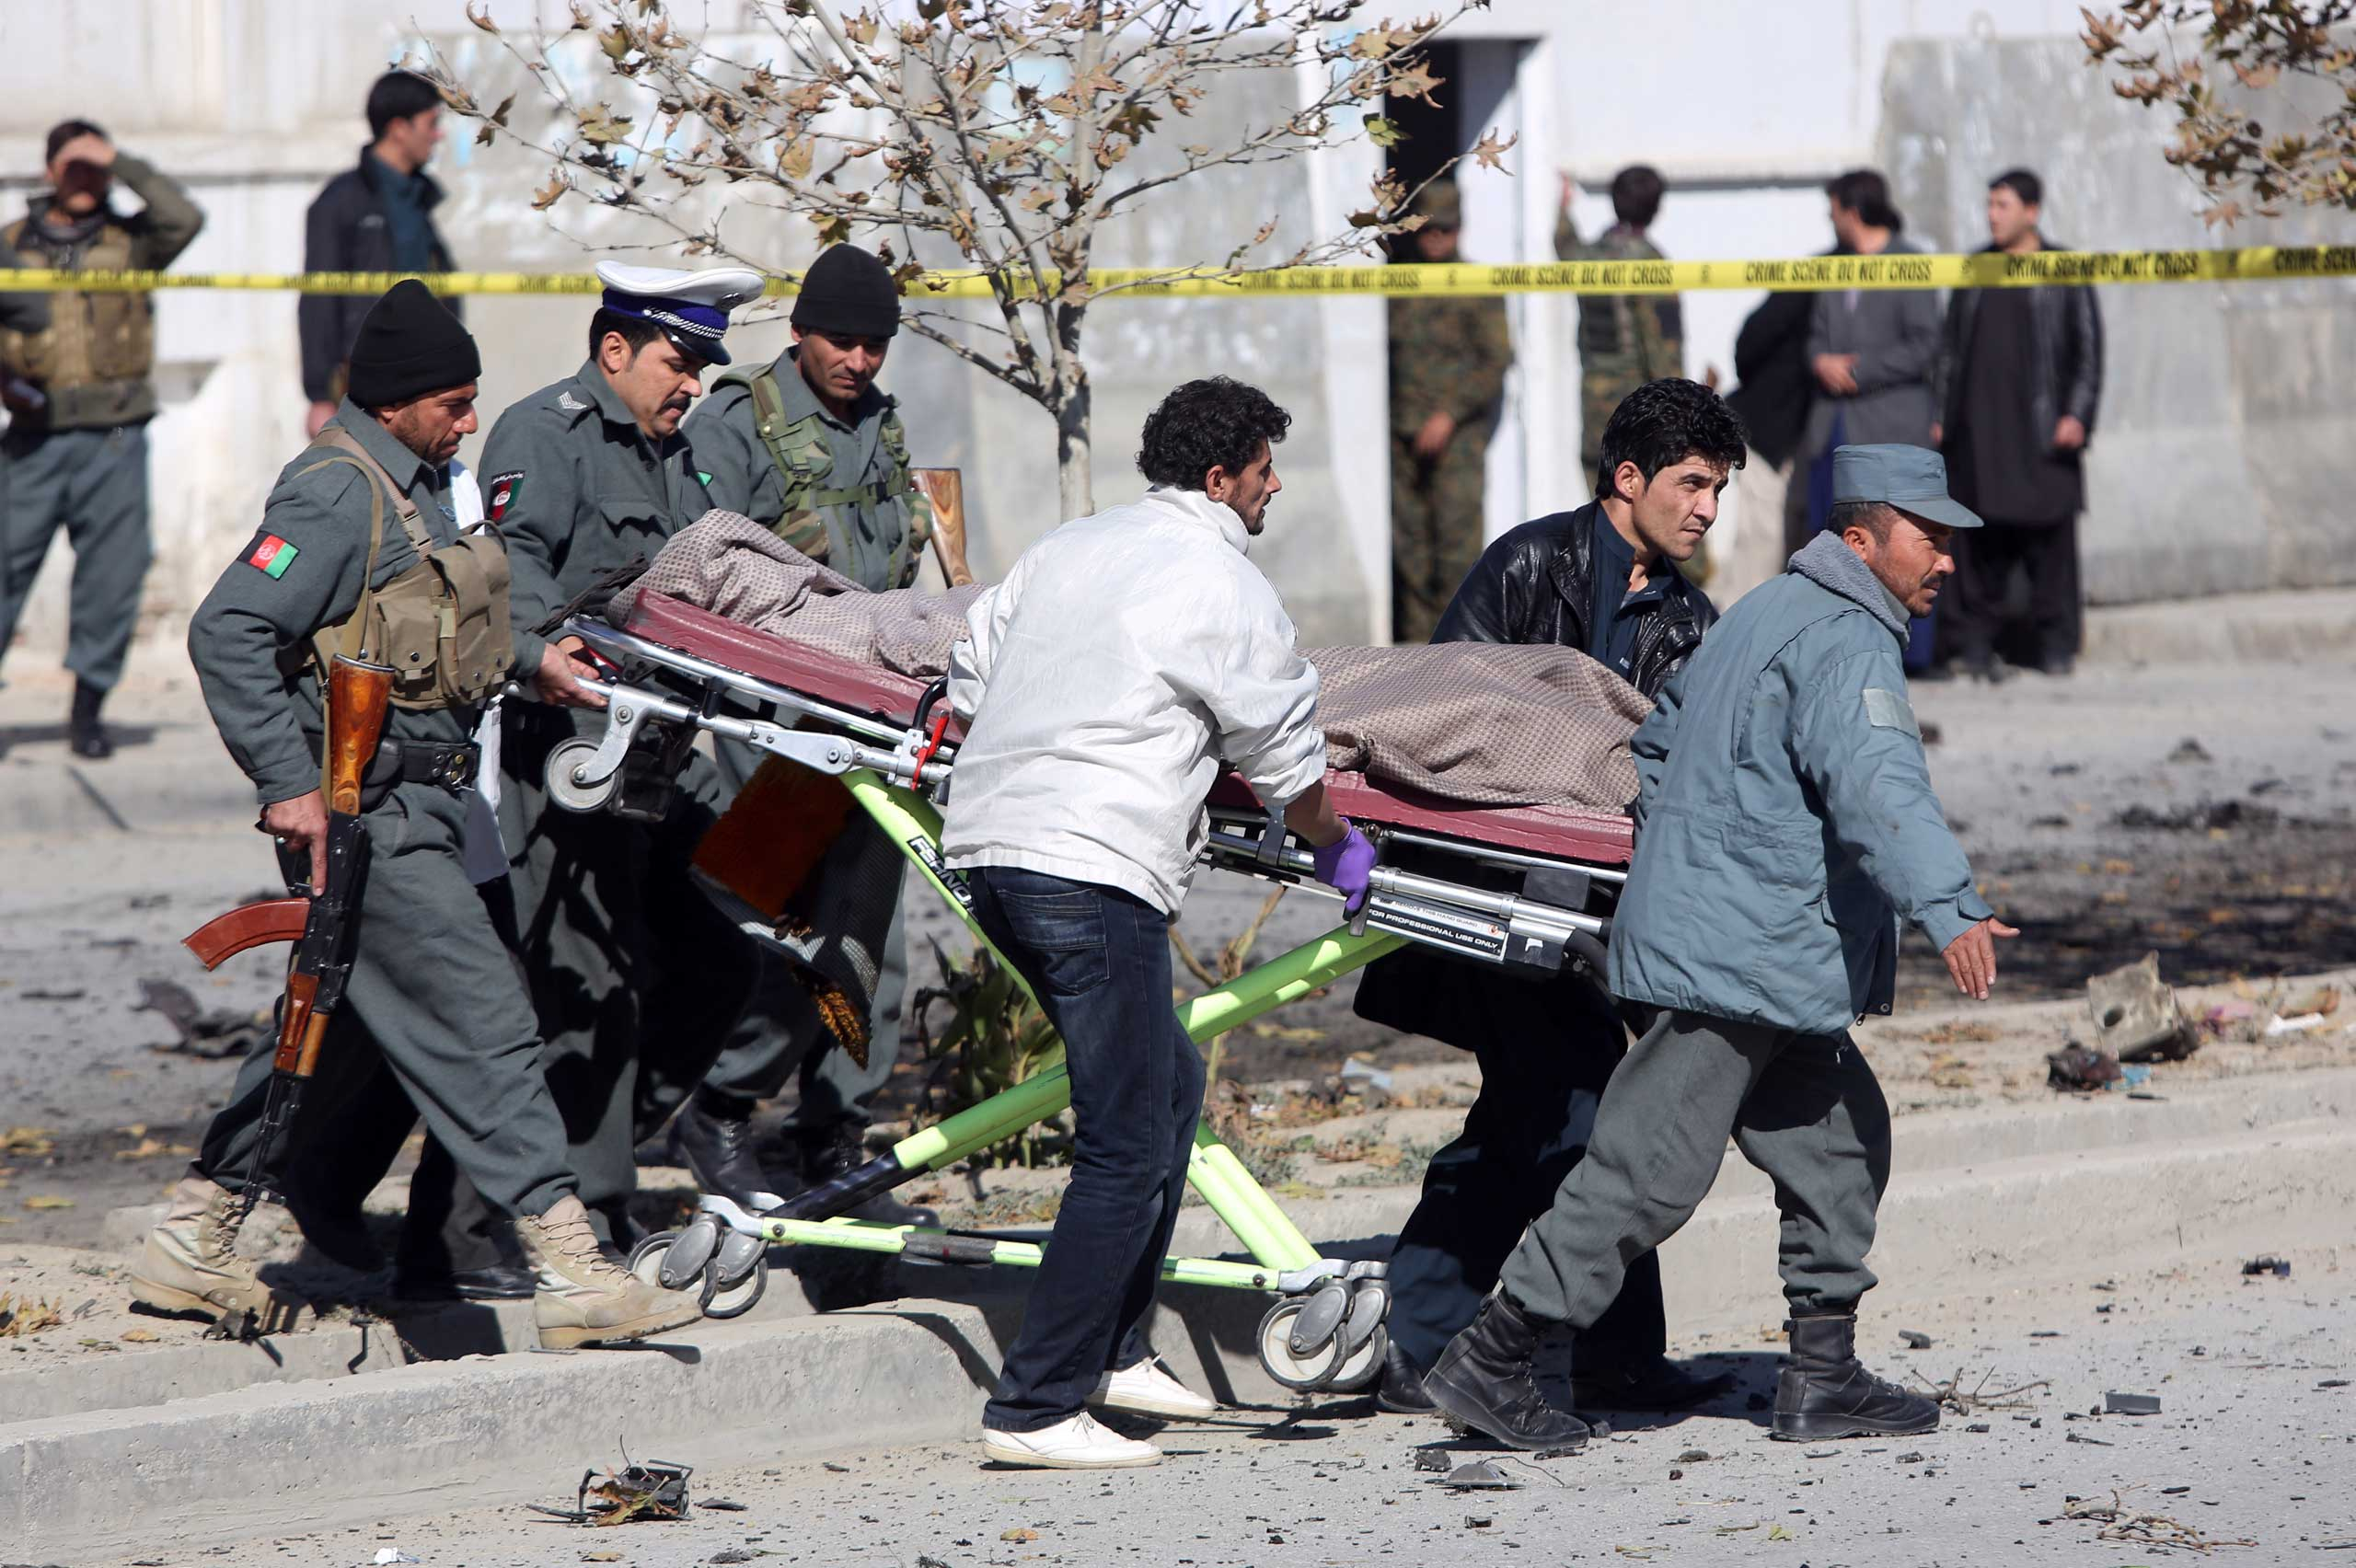 Afghan security forces carry the body of a civilian after a suicide attack in Kabul that targeted Shukria Barazkai, a prominent female member of Afghanistan's parliament, Nov. 16, 2014.